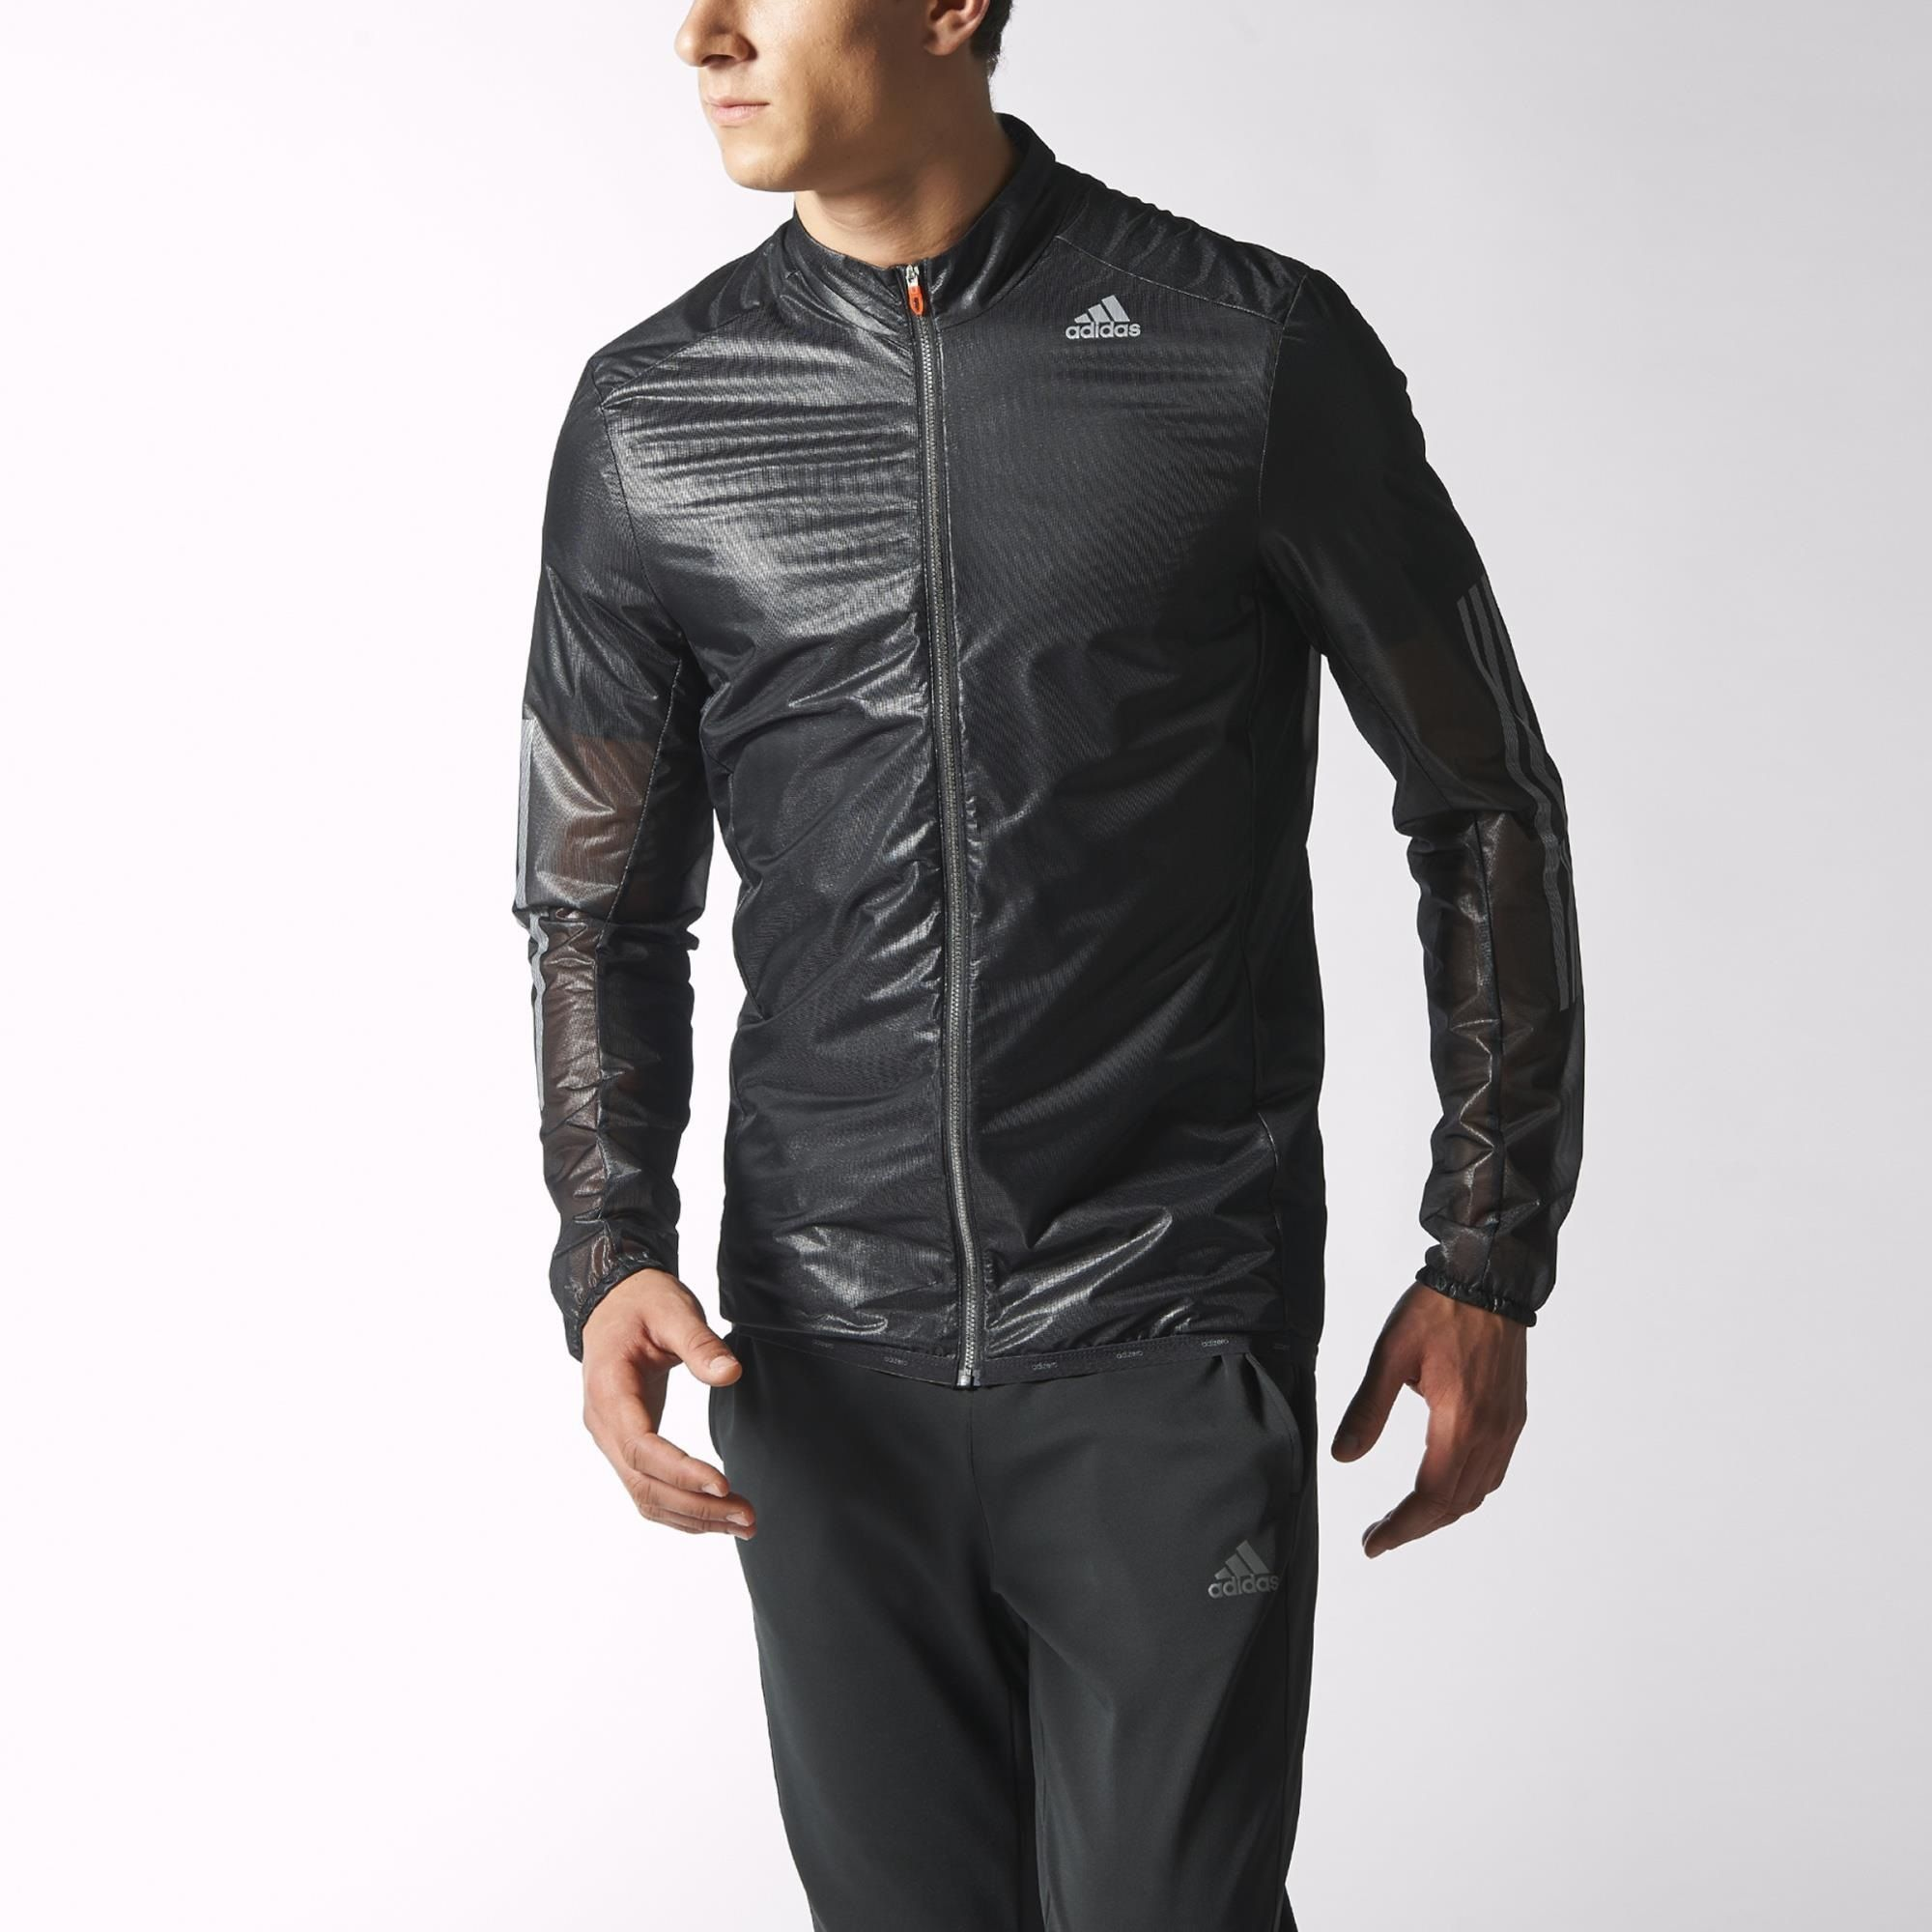 adidas Adizero ClimaProof Jacket | adidas US | Athletic ...